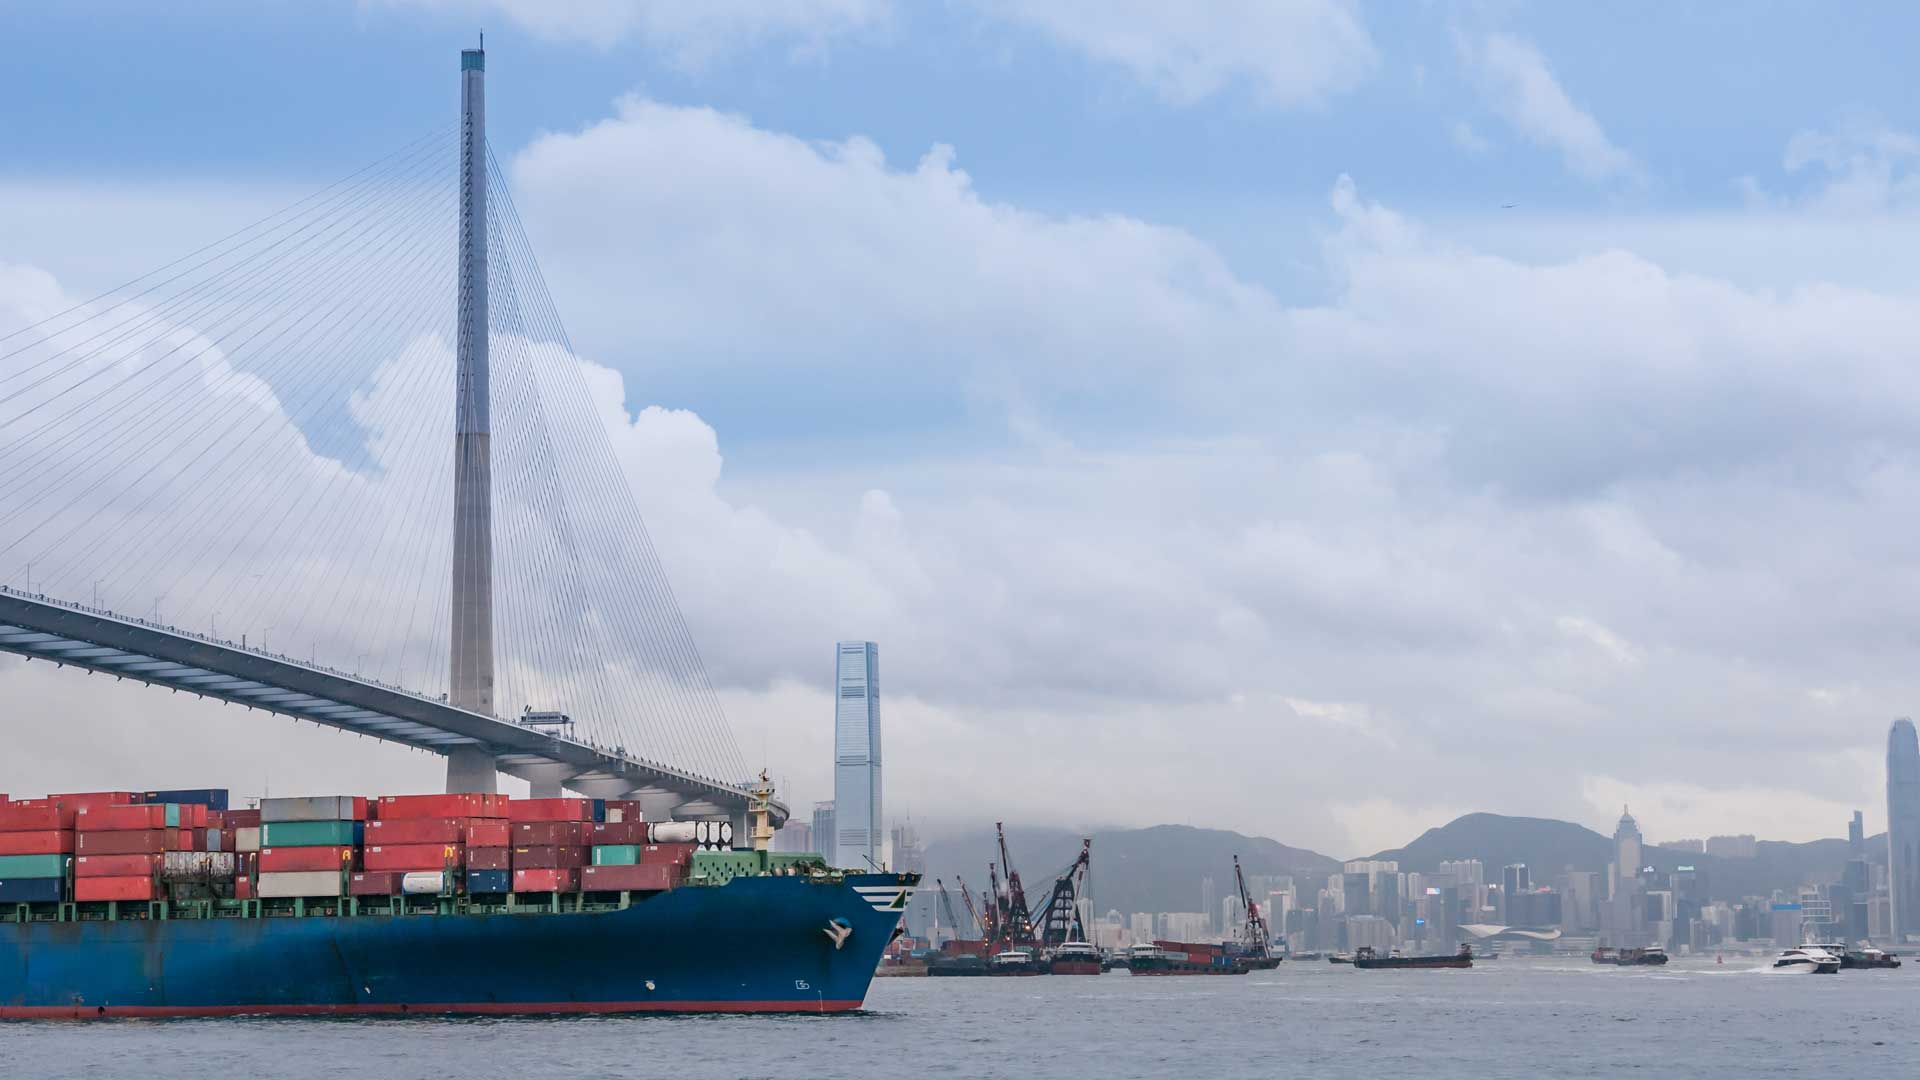 Container ships in Hong Kong's harbor.